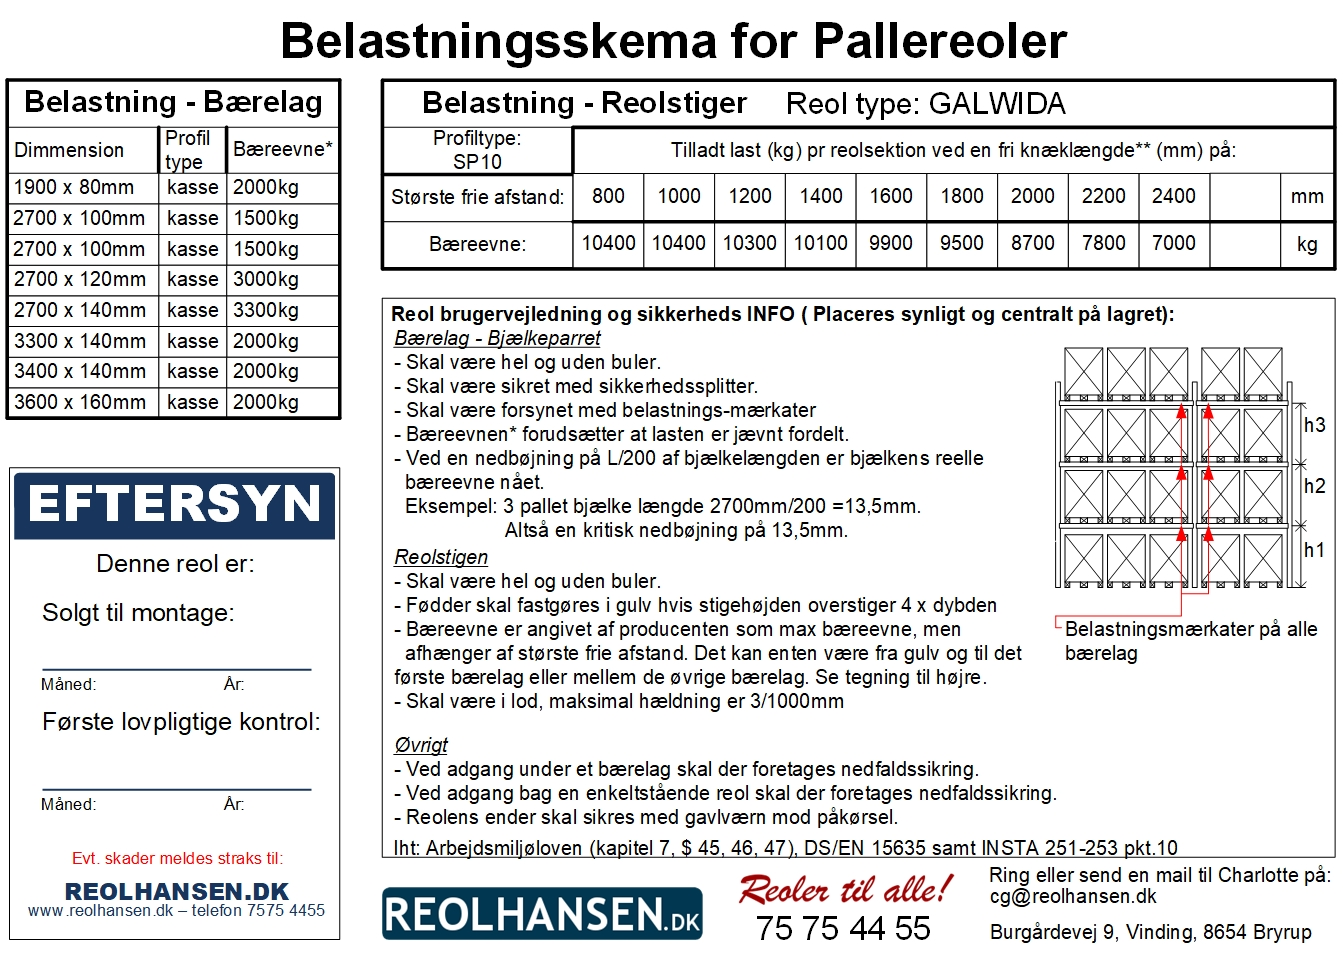 Belastningsskema for pallereol model Galwida